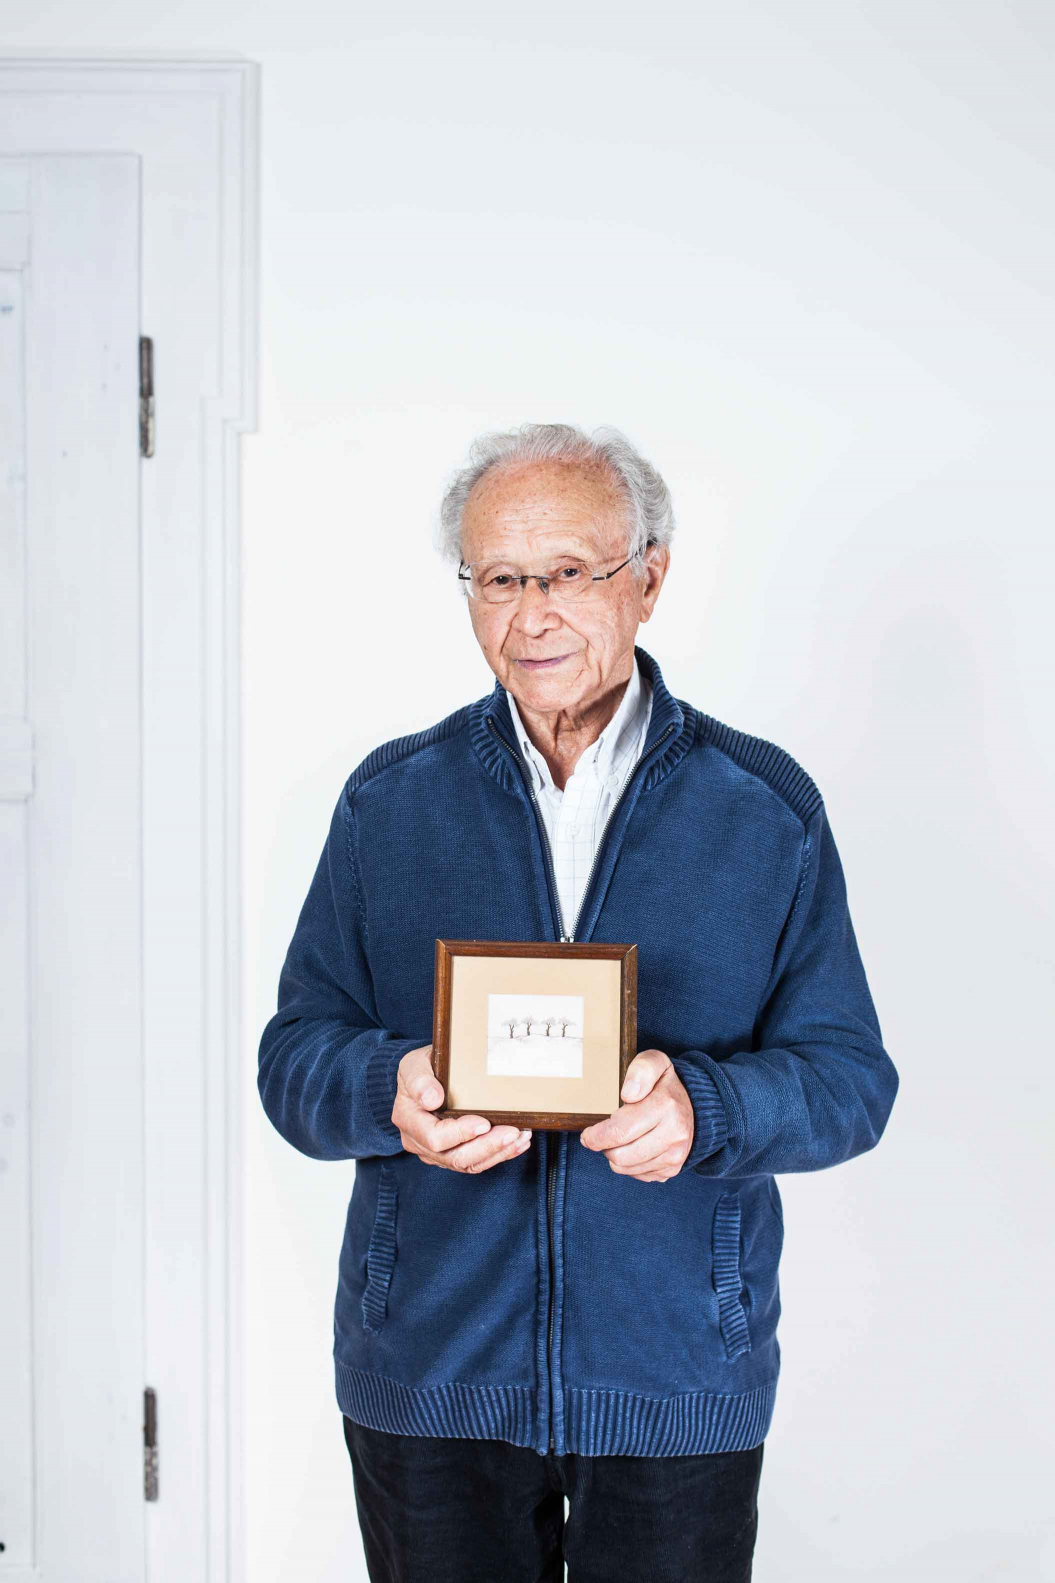 Elderly man holding a drawn picture with four trees in a frame in his hands